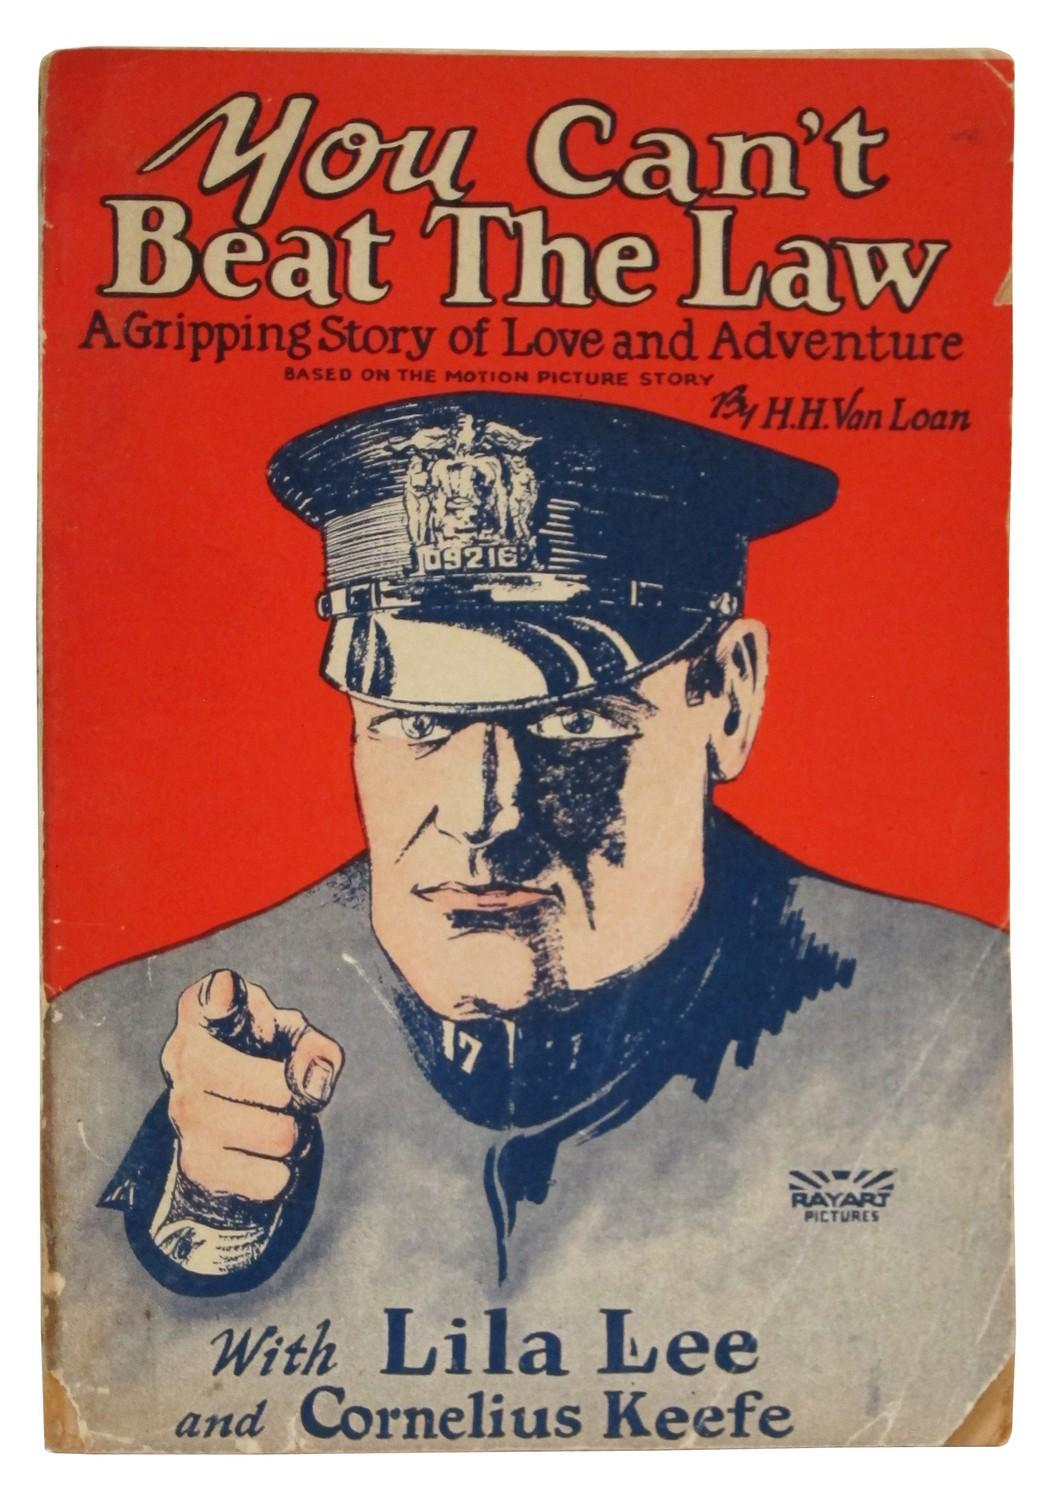 You Can't Beat the Law: A Gripping Story of Love and Adventure: Van Loan, H. H.